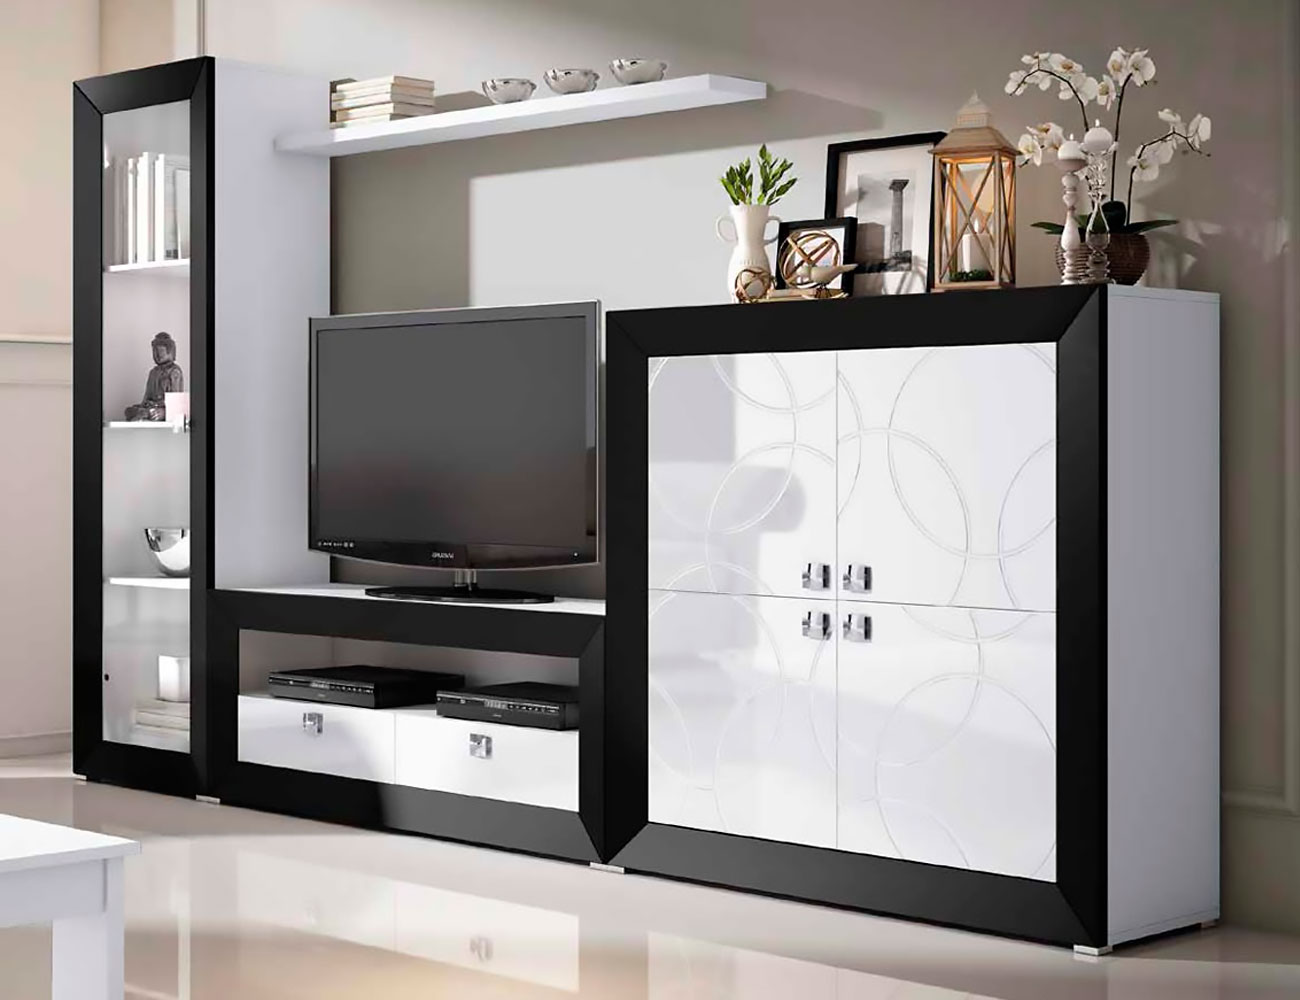 Mueble de sal n modular moderno lacado 2477 factory for Mueble vitrina salon moderno